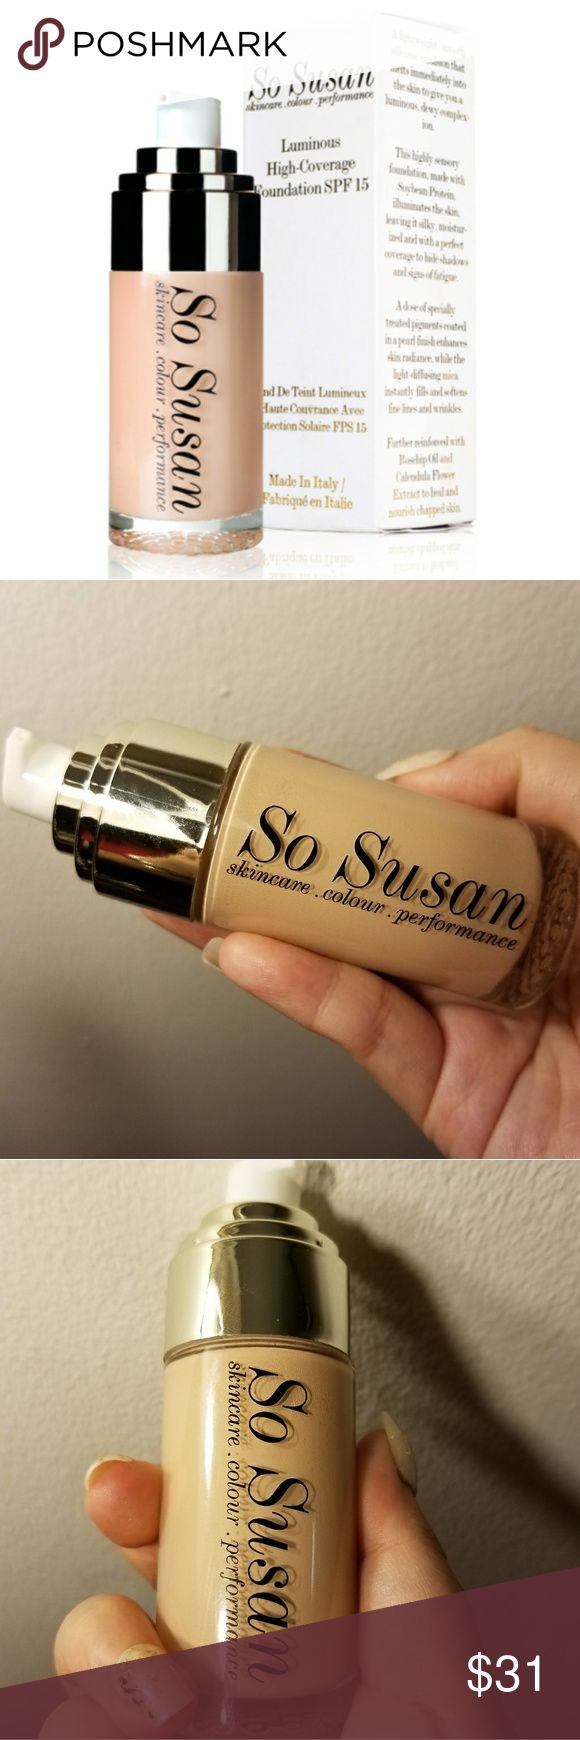 So Susan Luminous High-Coverage Foundation SPF 15 Brand new! Does not come with box**  Lightweight, smooth siliconic emulsion that melts immediately into the skin to give you a luminous, dewy complexion. This highly sensory foundation, made with Soybean Protein, illuminates the skin, leaving it silky, moisturized and with a perfect coverage to hide shadows and signs of fatigue. A dose of specially treated pigments coated in a pearl finish enhances skin radiance, while the light-diffusin mica…